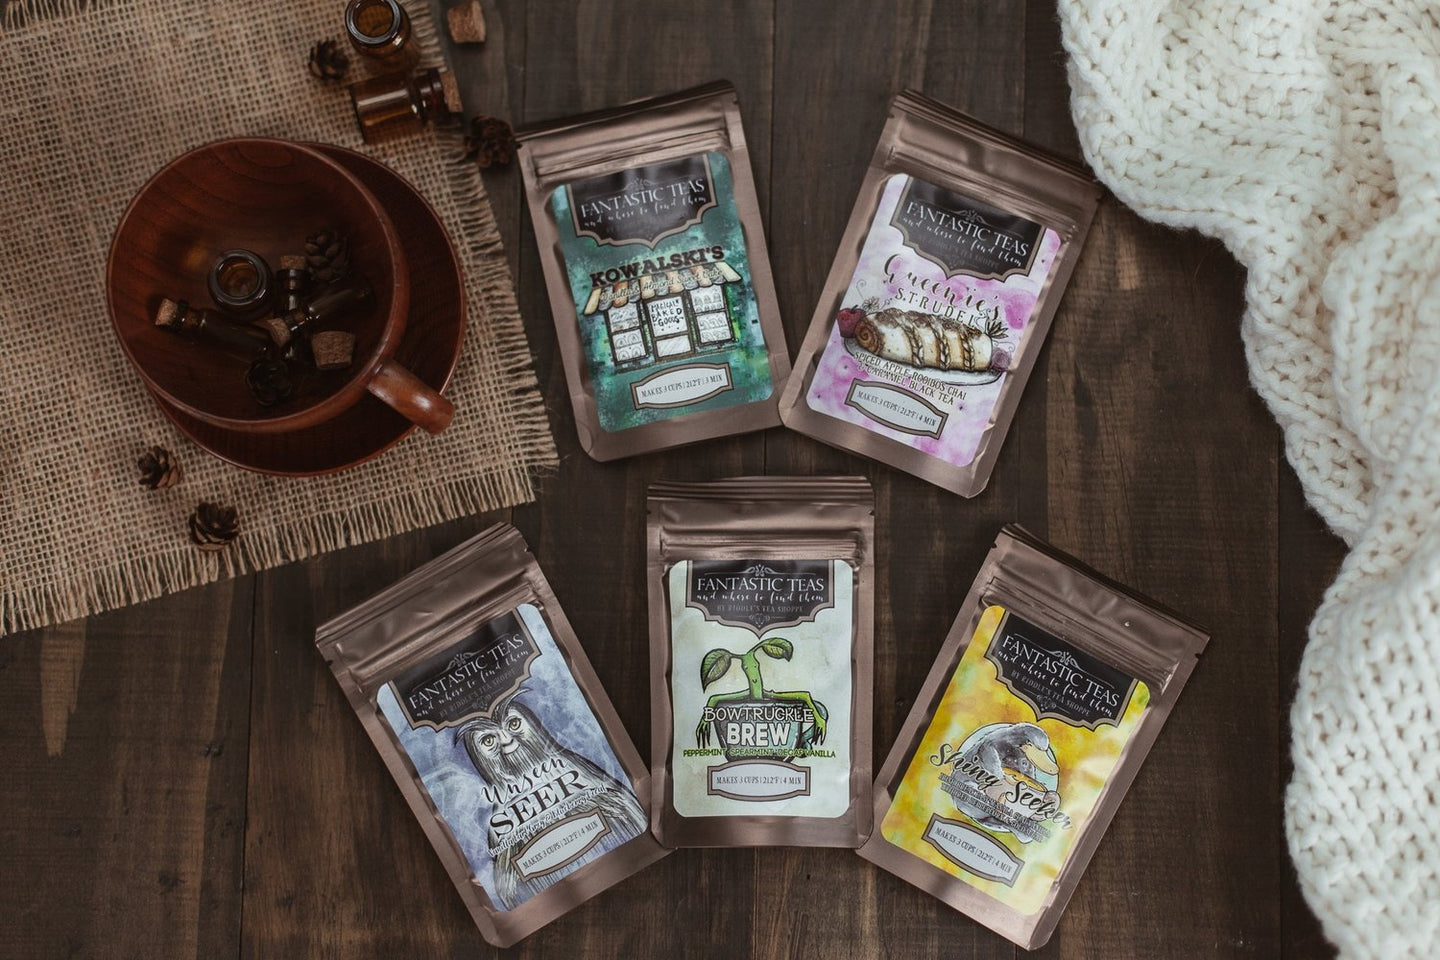 Fantastic Teas Sampler Set